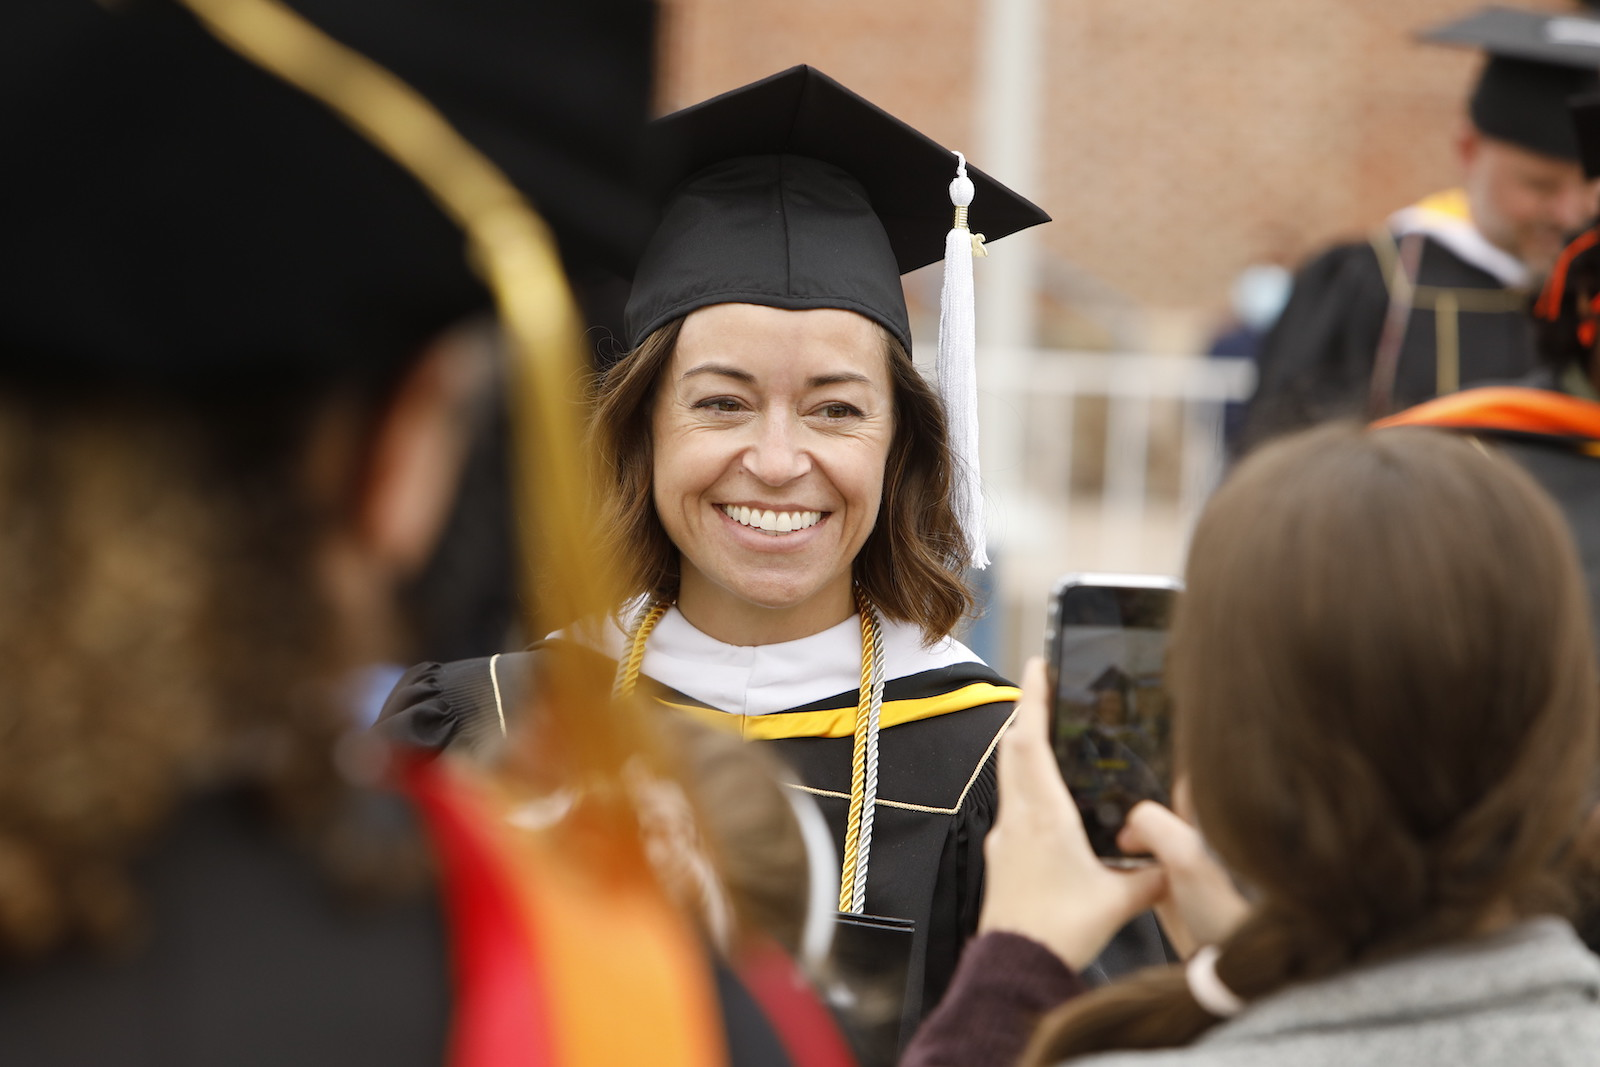 Graduate smiling for photo